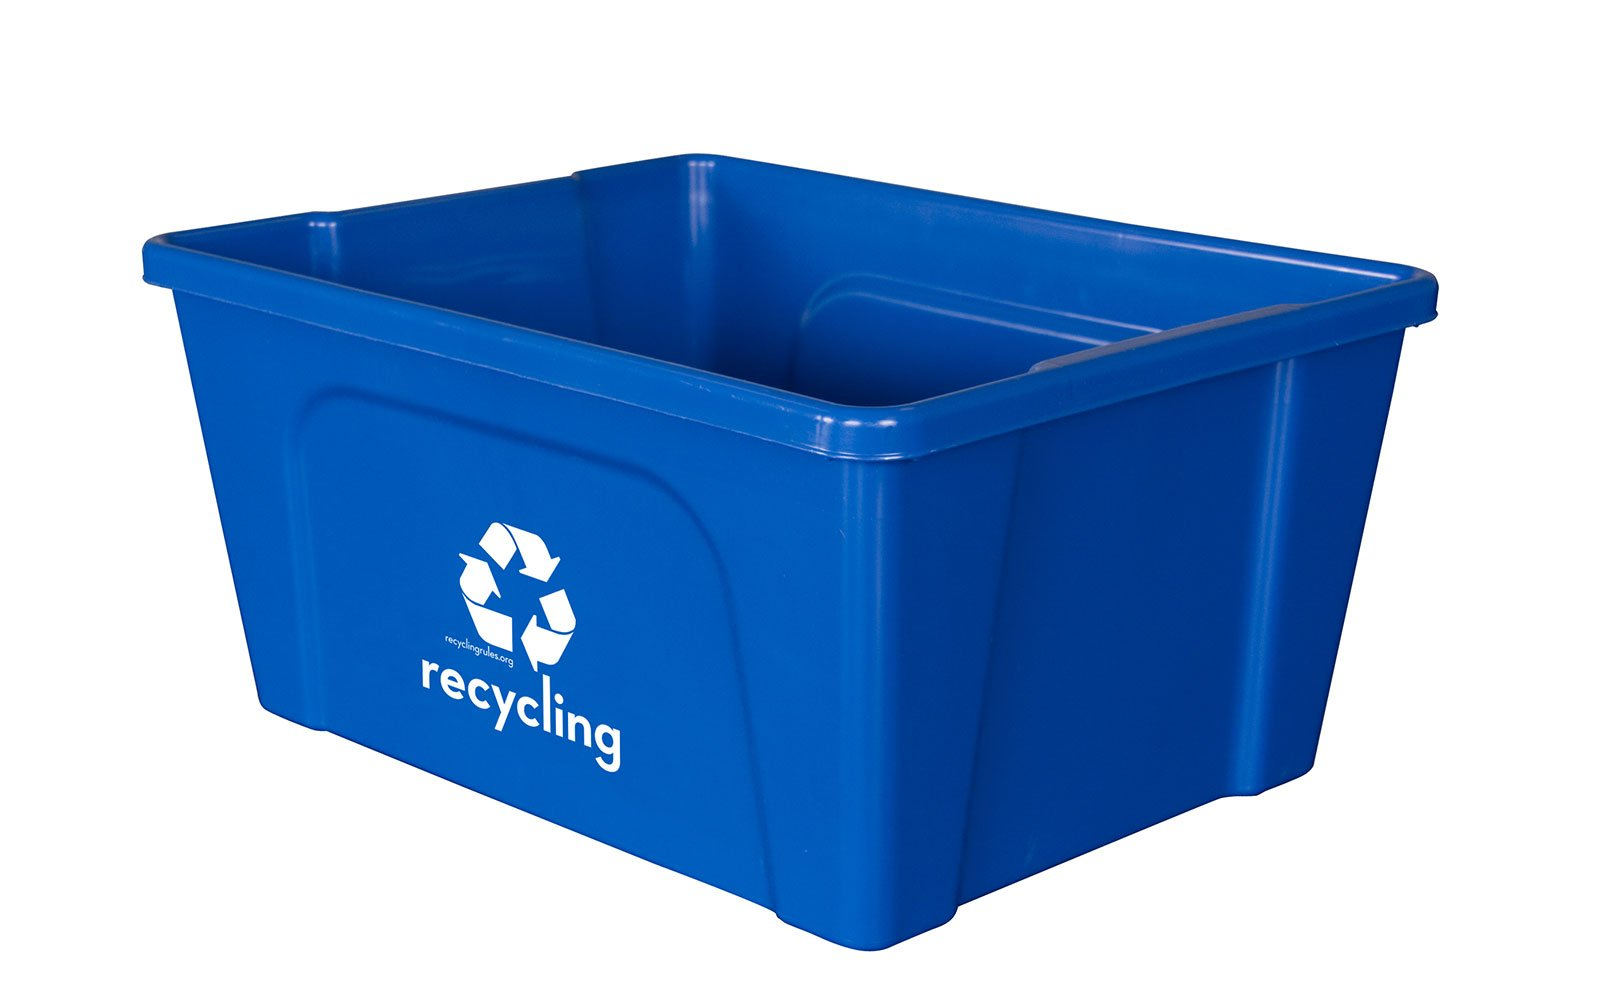 Qty = 4 Low Profile Blue Deskside Recycling Bin is perfect for recycling office paper and more!